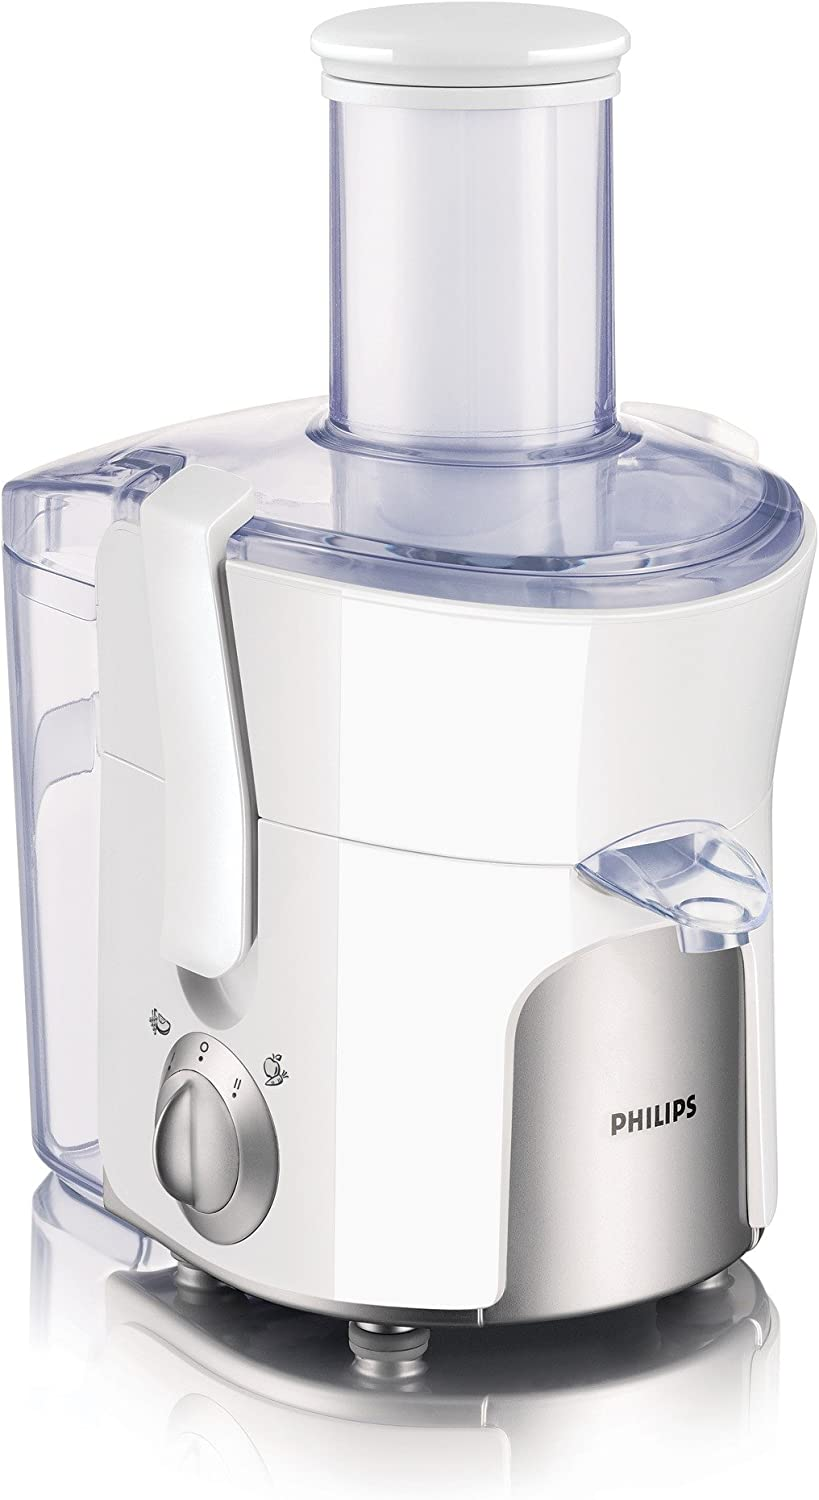 Philips HR1854/00 Licuadora: Amazon.es: Hogar